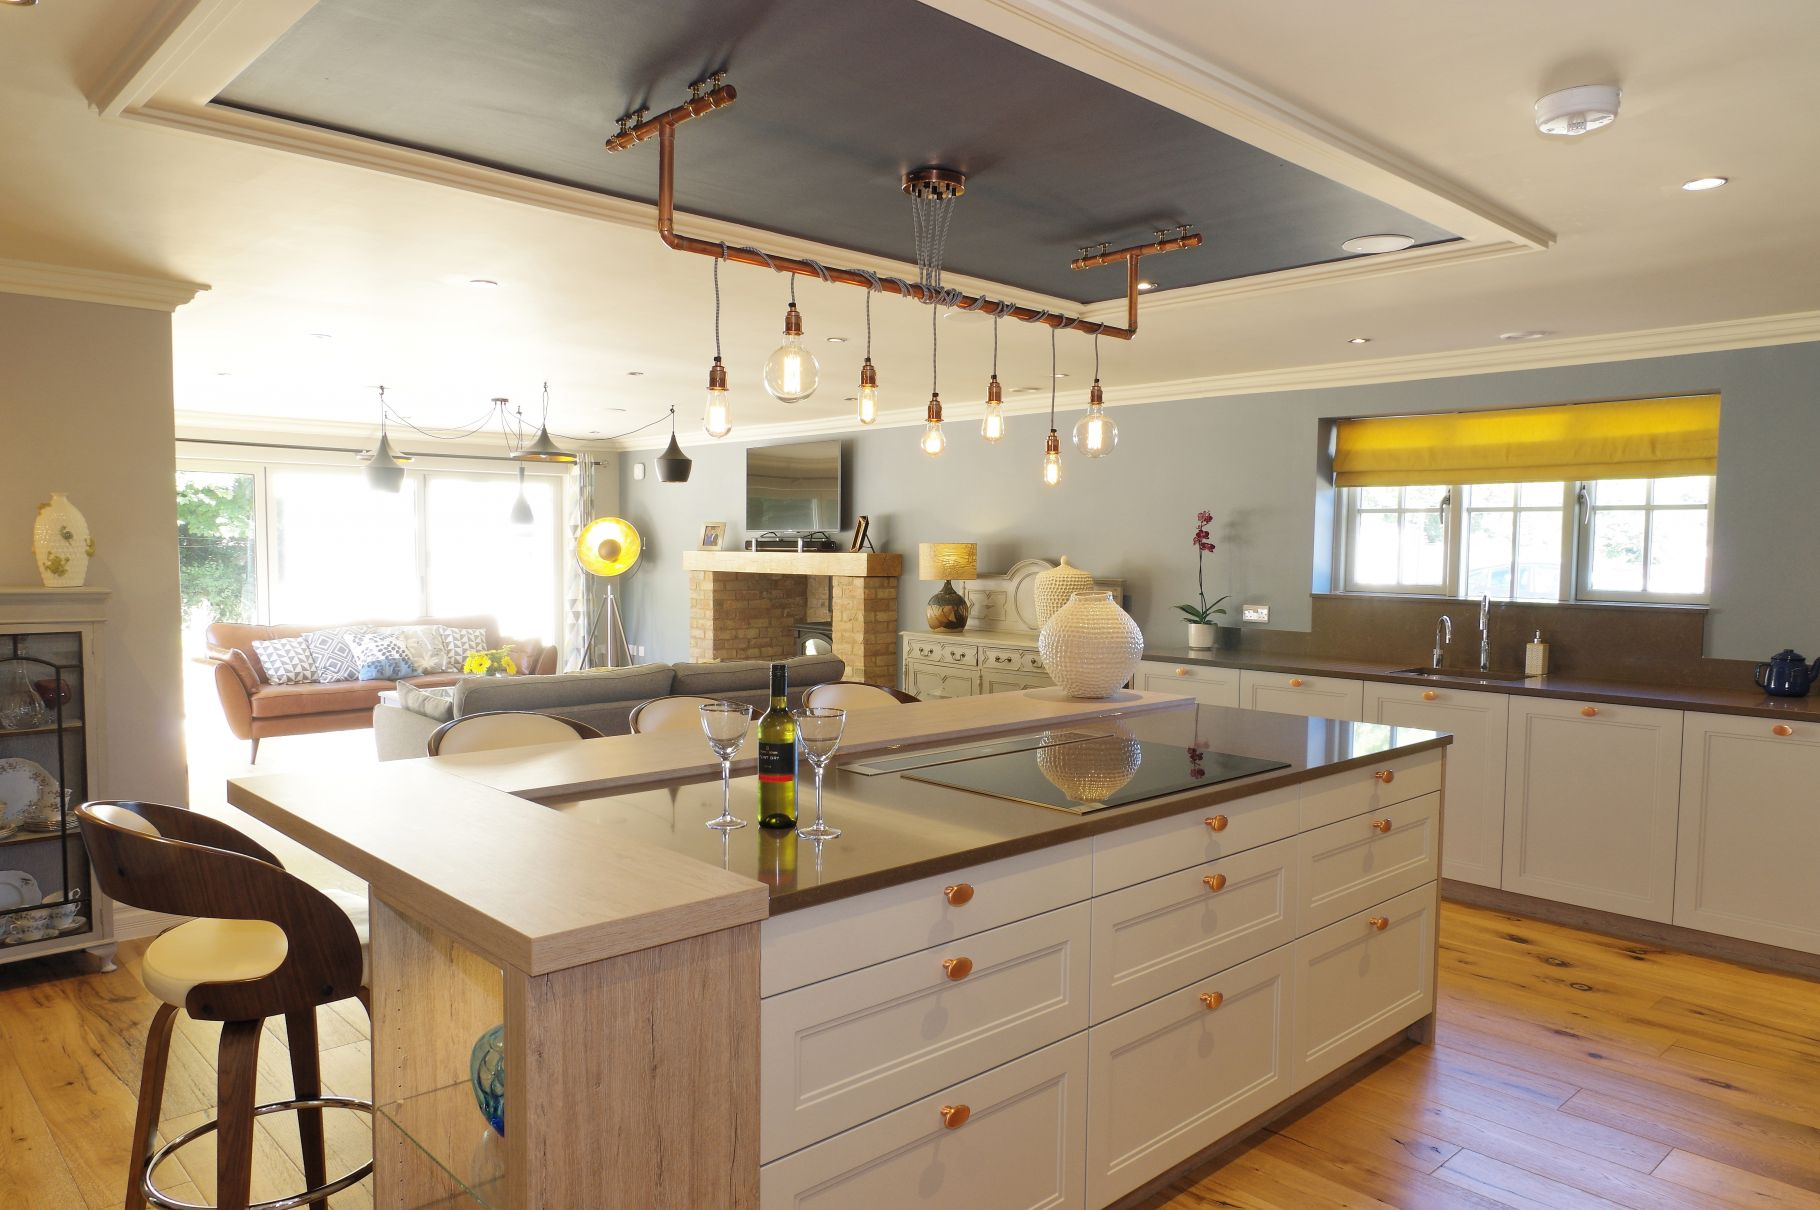 Contemporary design with copper accents ptc kitchens - Kitchen with copper accents ...